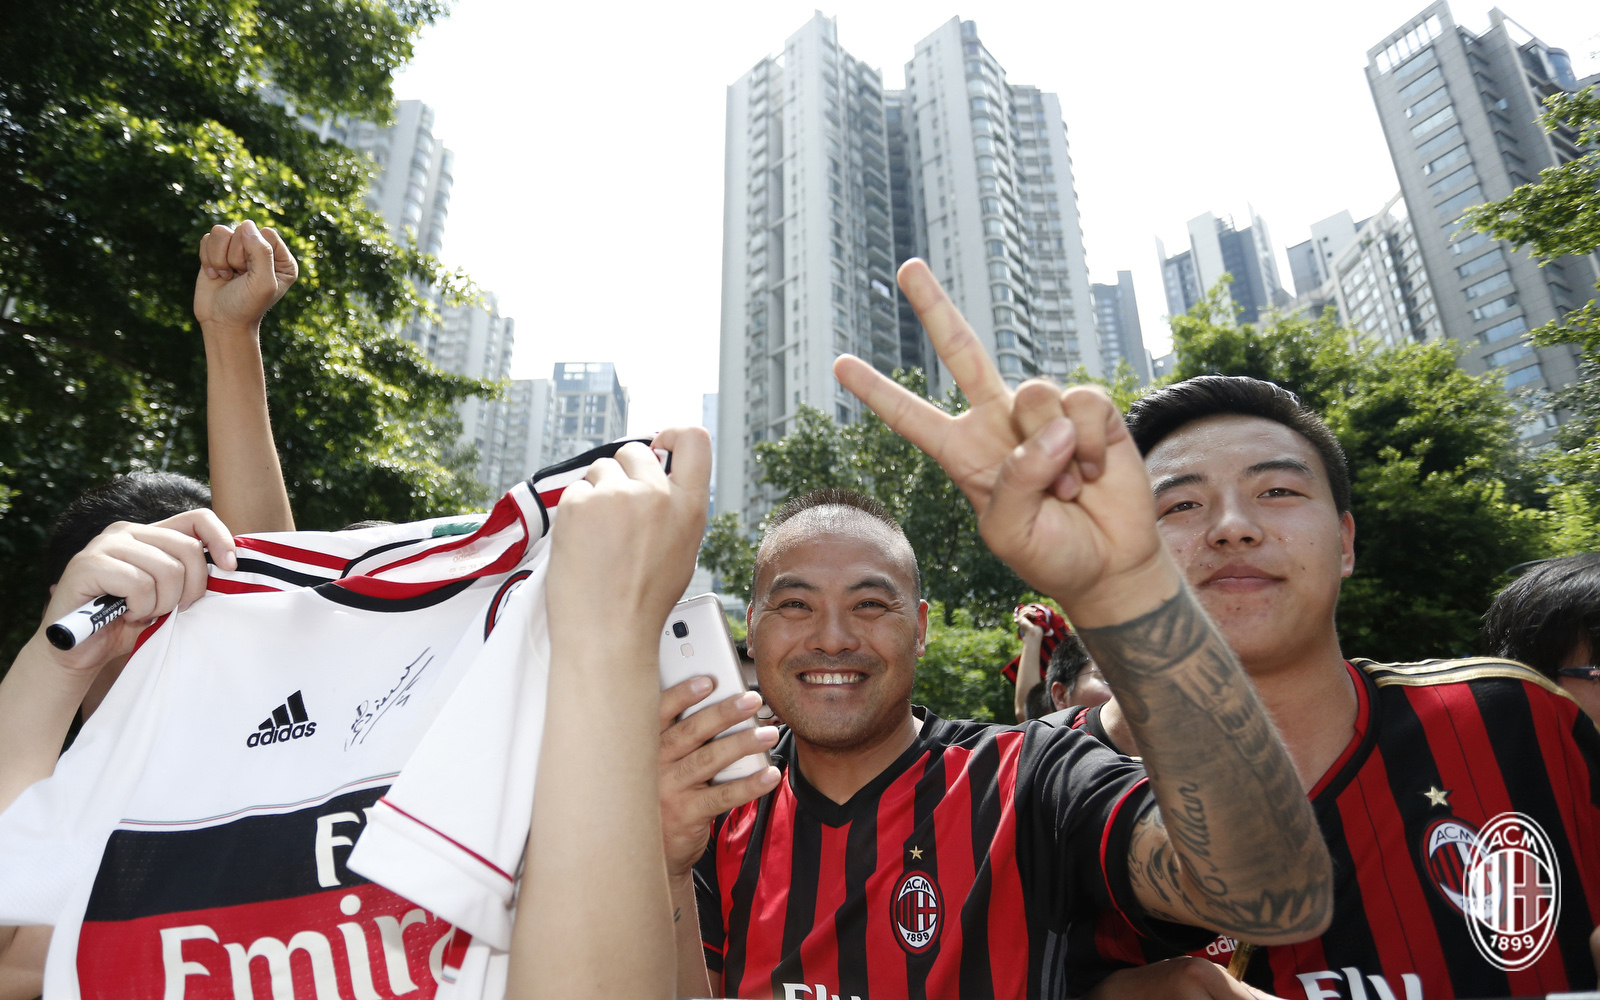 Foto LaPresse - Spada 15 Luglio 2017 - Guangzhou (Cina) A.C. Milan - Tournee Cina 2017 - Arrivo a Guangzhou Sport Calcio Nella foto: tifosi milan Photo LaPresse - Spada July 15, 2017 Guangzhou (China) Sport Soccer A.C. Milan -China Tournee 2017 - Arrive in Guangzhou In the pic: milan supporters